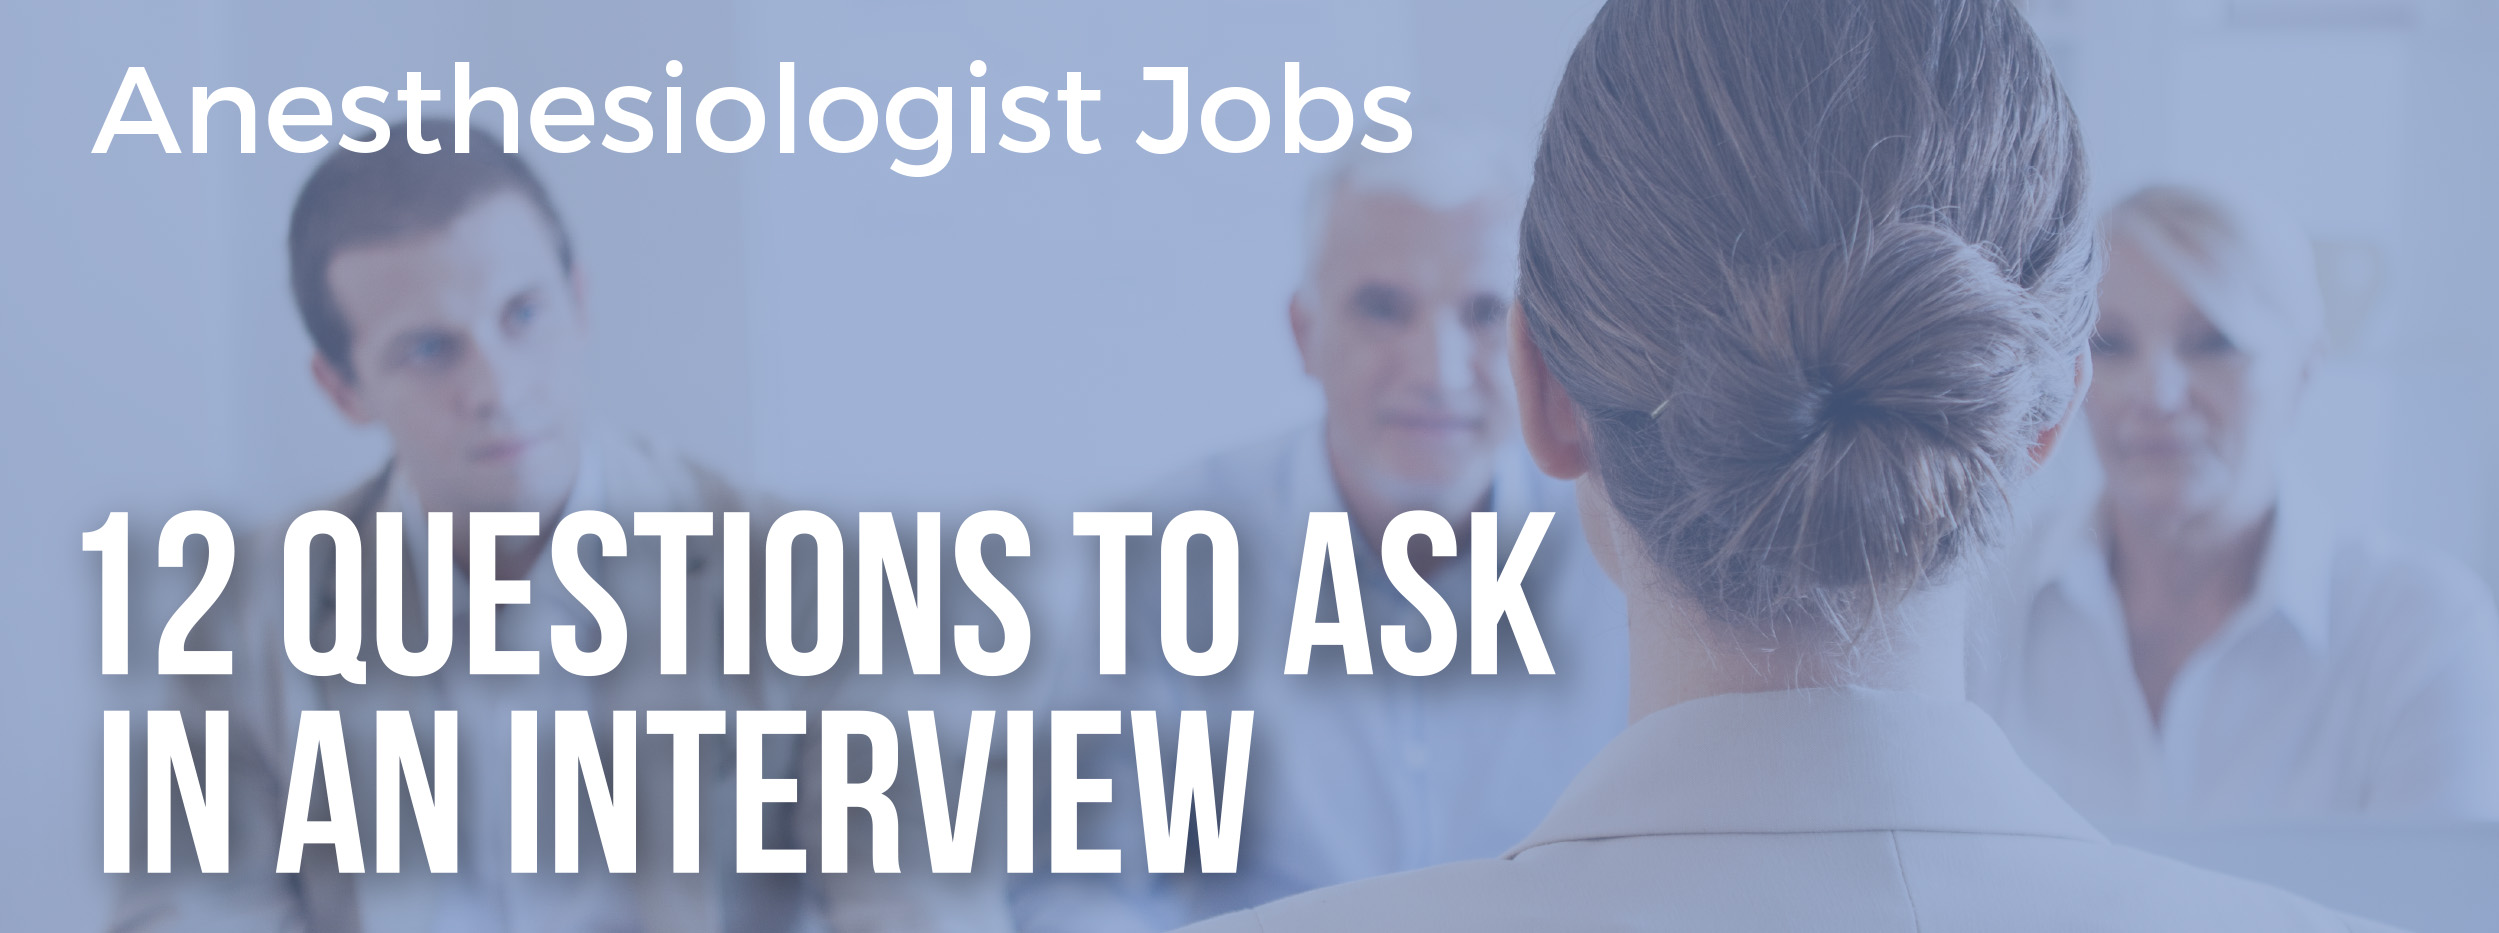 Anesthesiologist Jobs: 12 Questions to Ask in an Interview ...